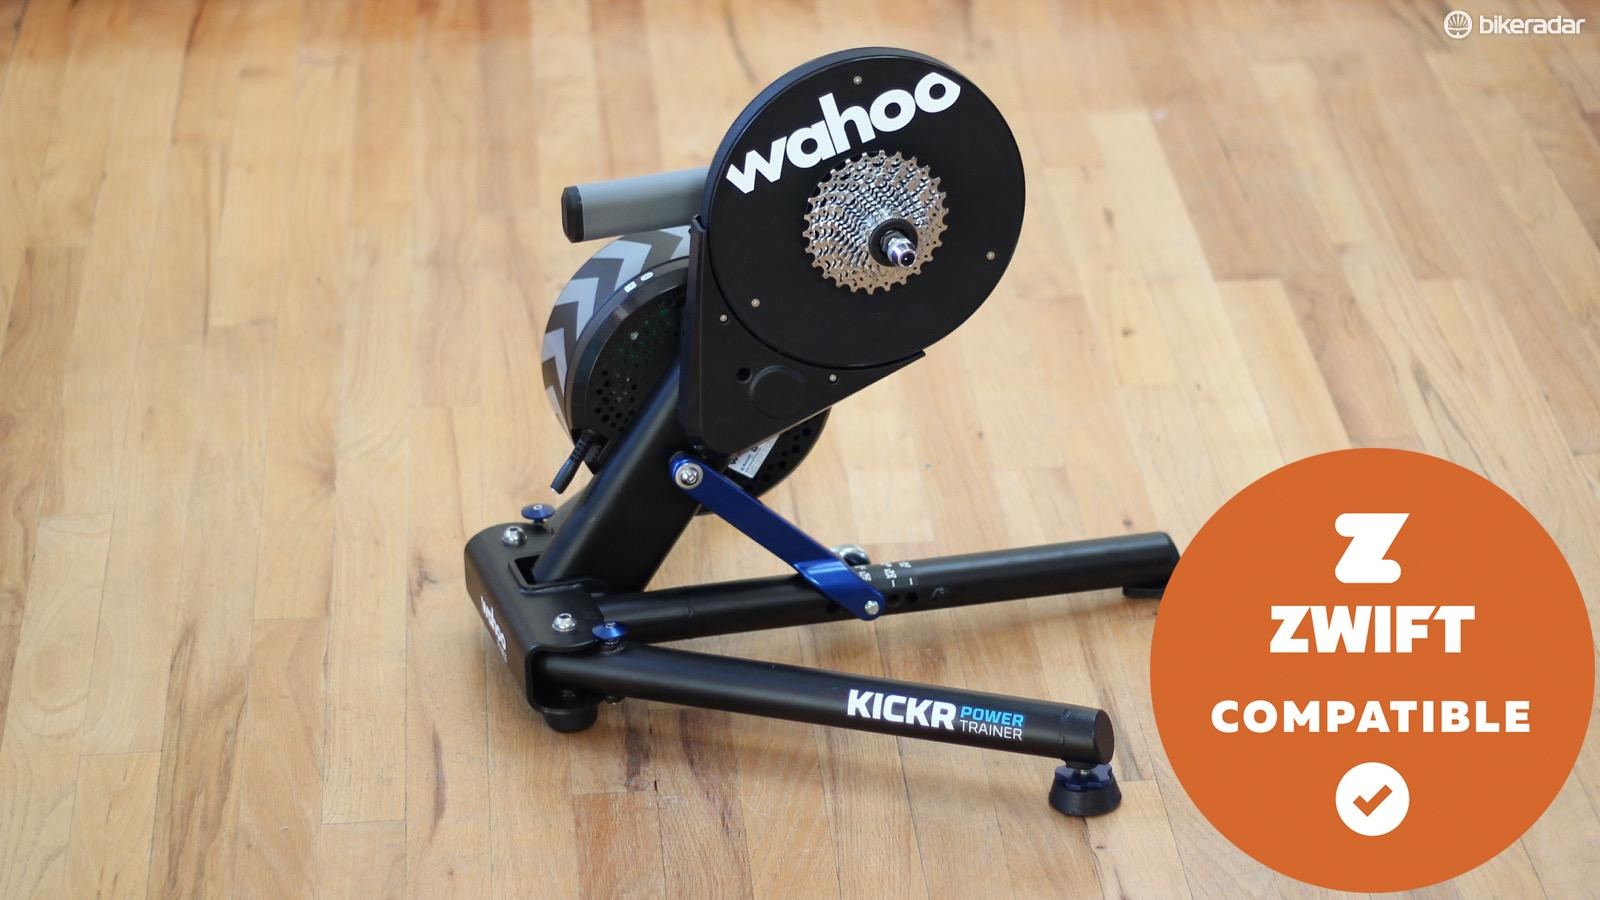 The redesigned Wahoo Kickr smart trainer measures power and controls resistance for use with training software such as TrainerRoad or virtual riding software such as Zwift